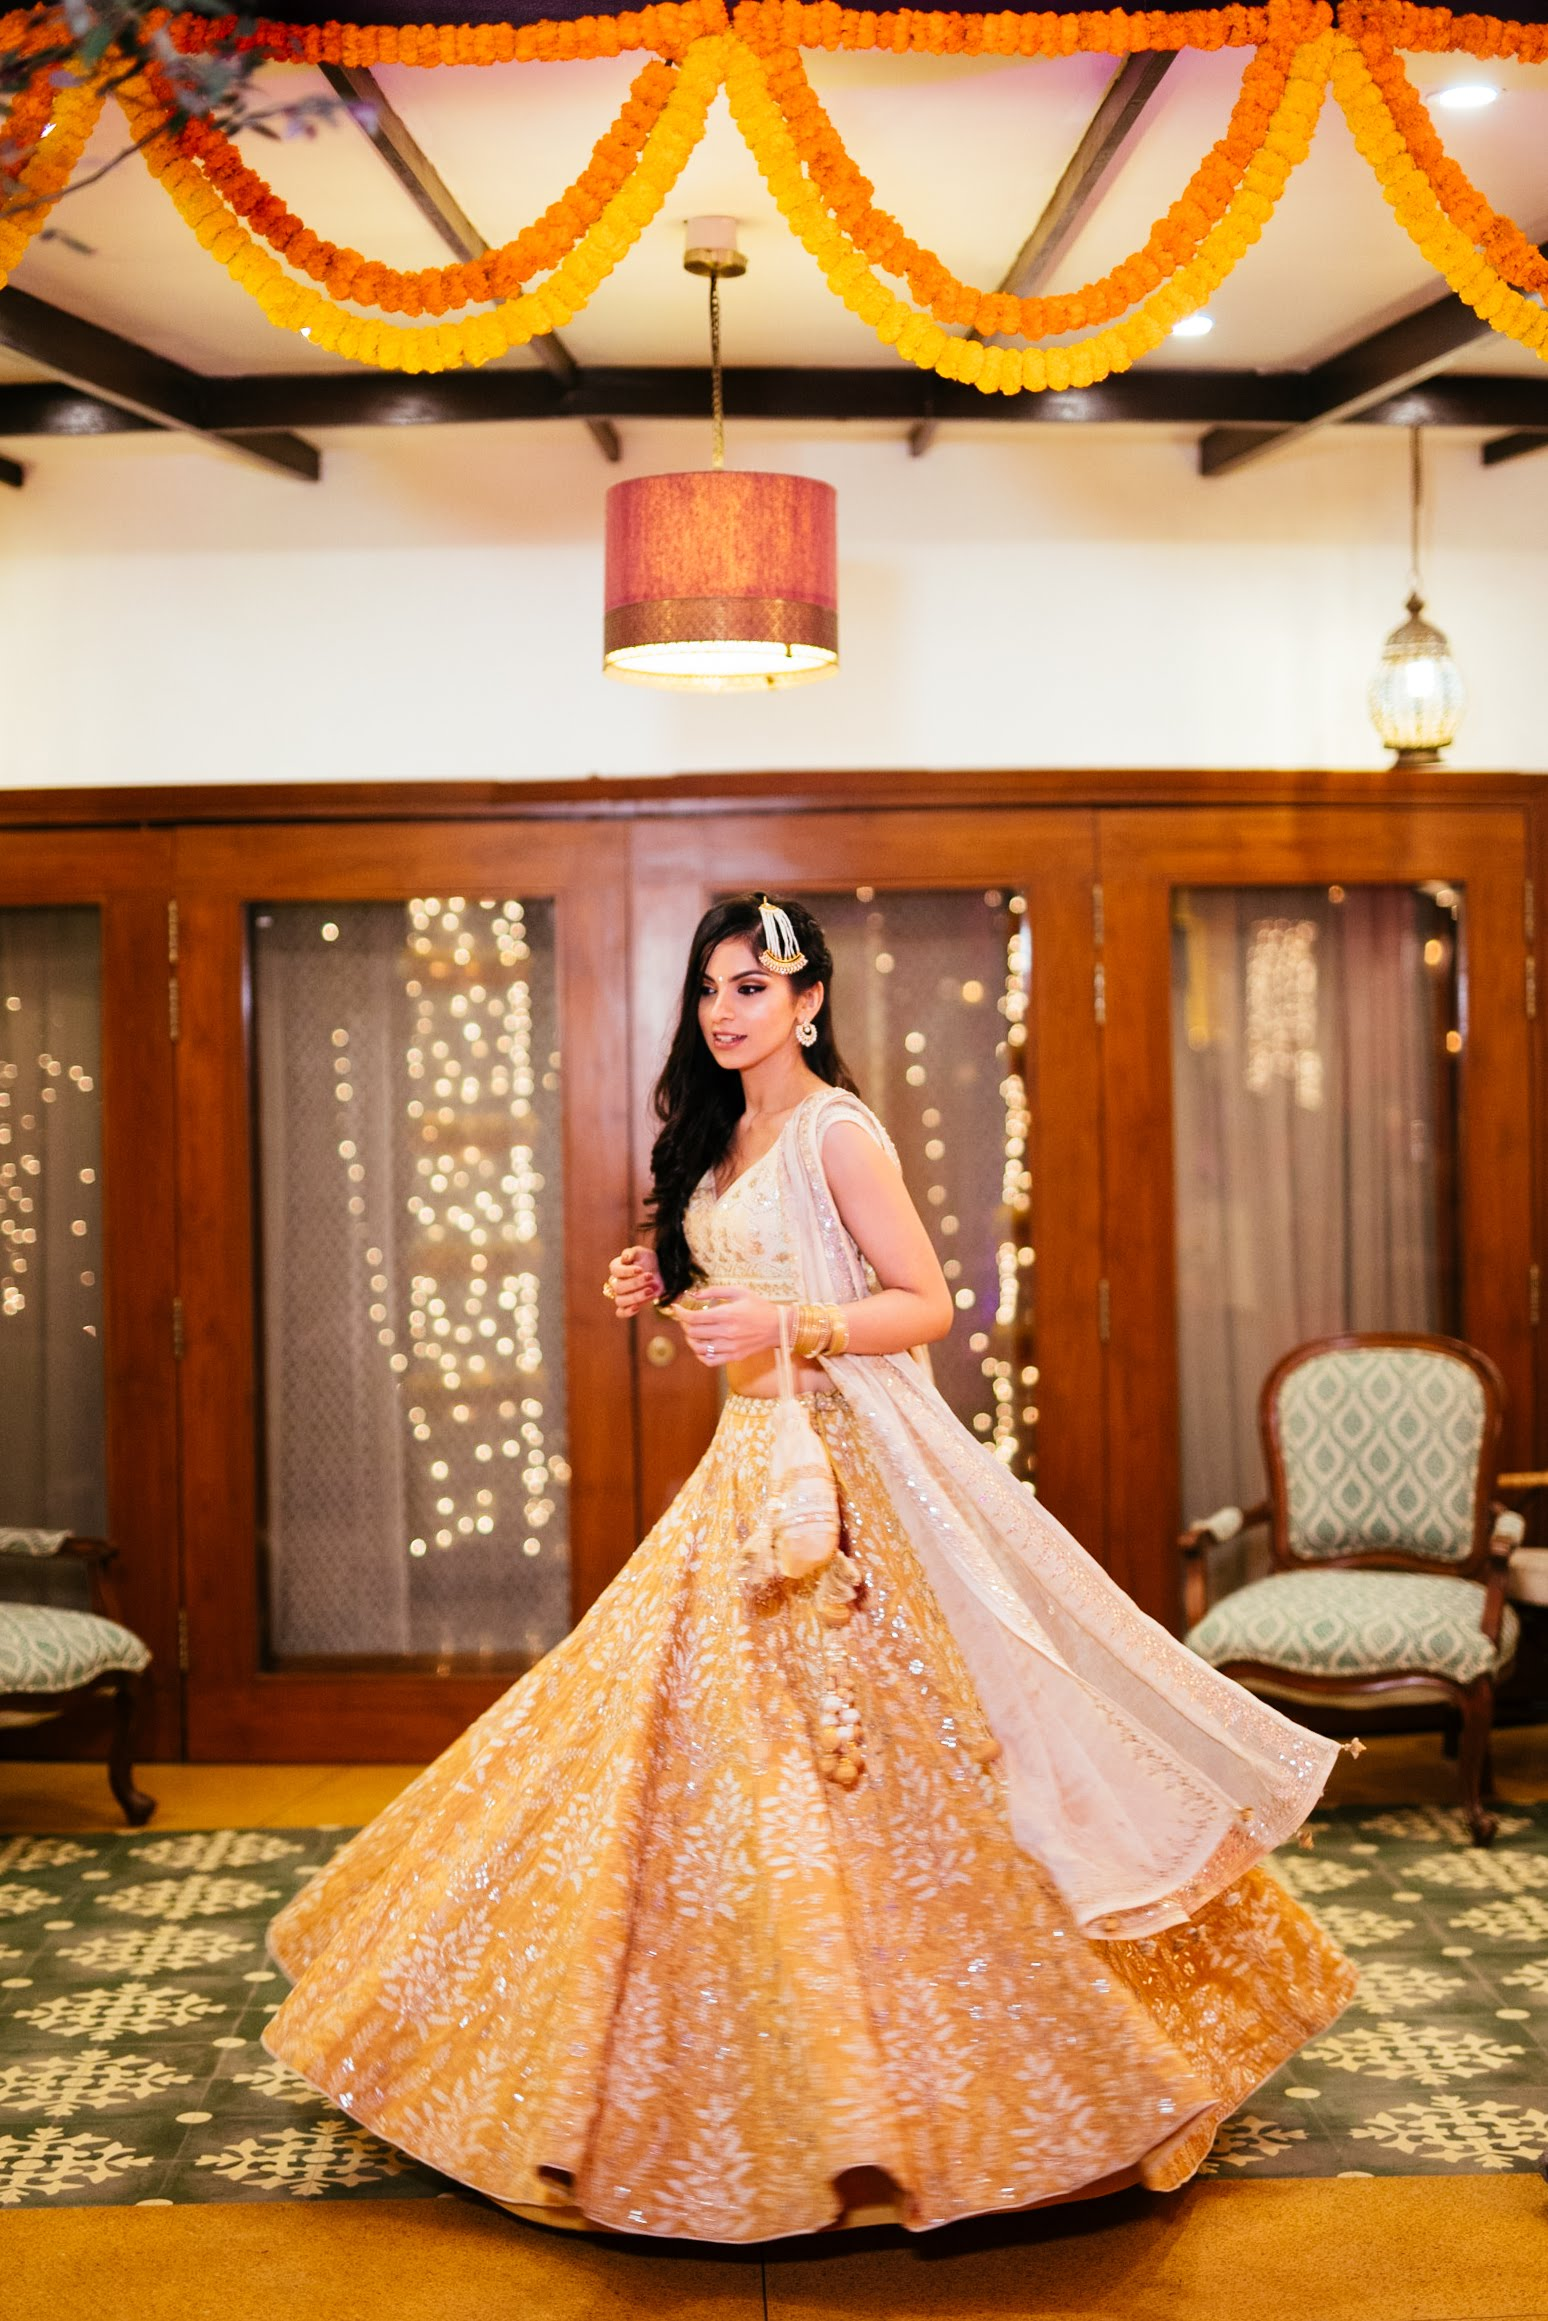 Ivory and Gold Sangeet Wedding Outfit.